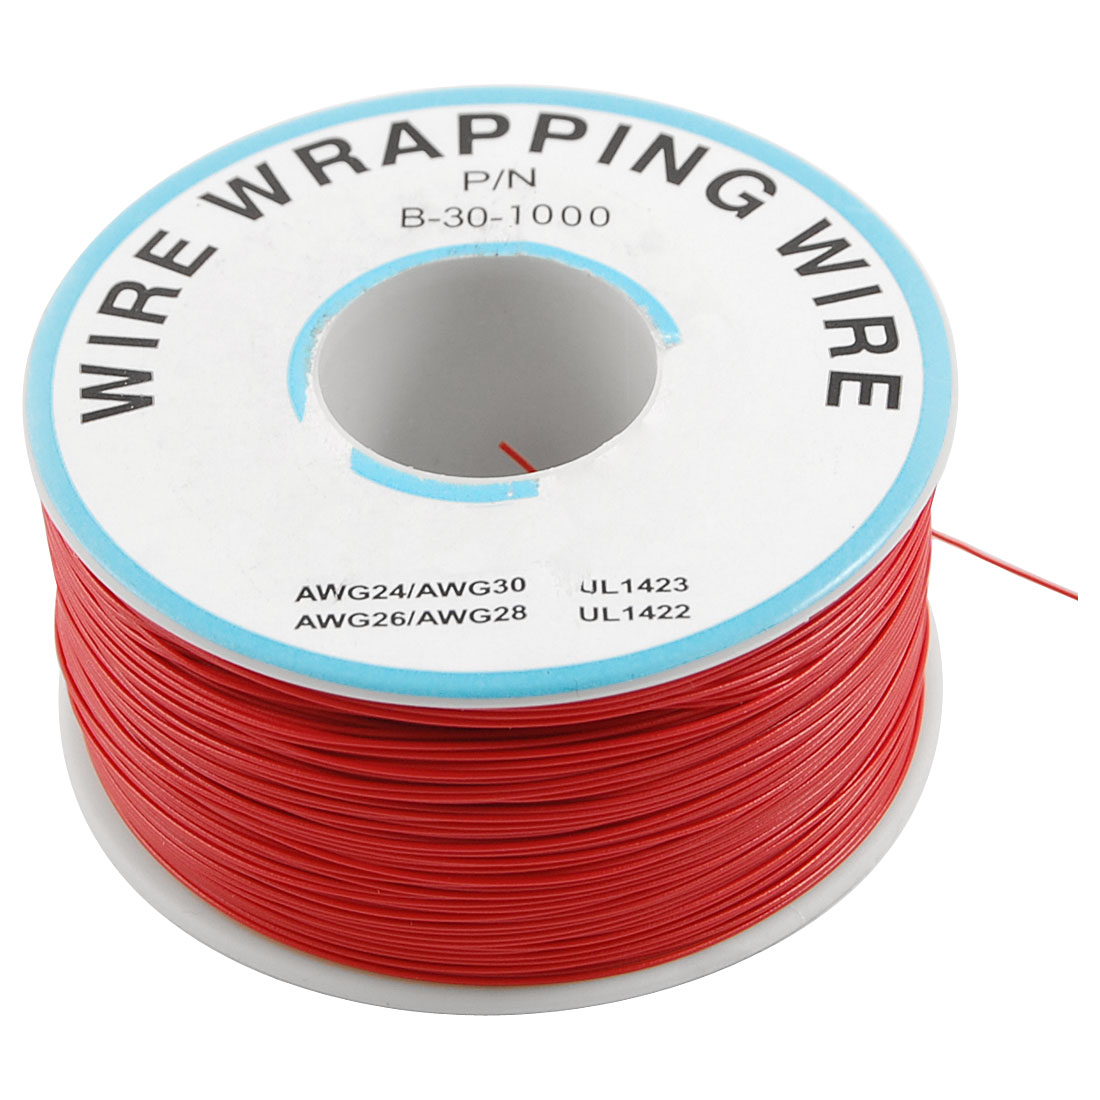 PCB Solder 0.25mm Tin Plated Copper Cord Dia Wire-wrapping Wire 305M 30AWG Red